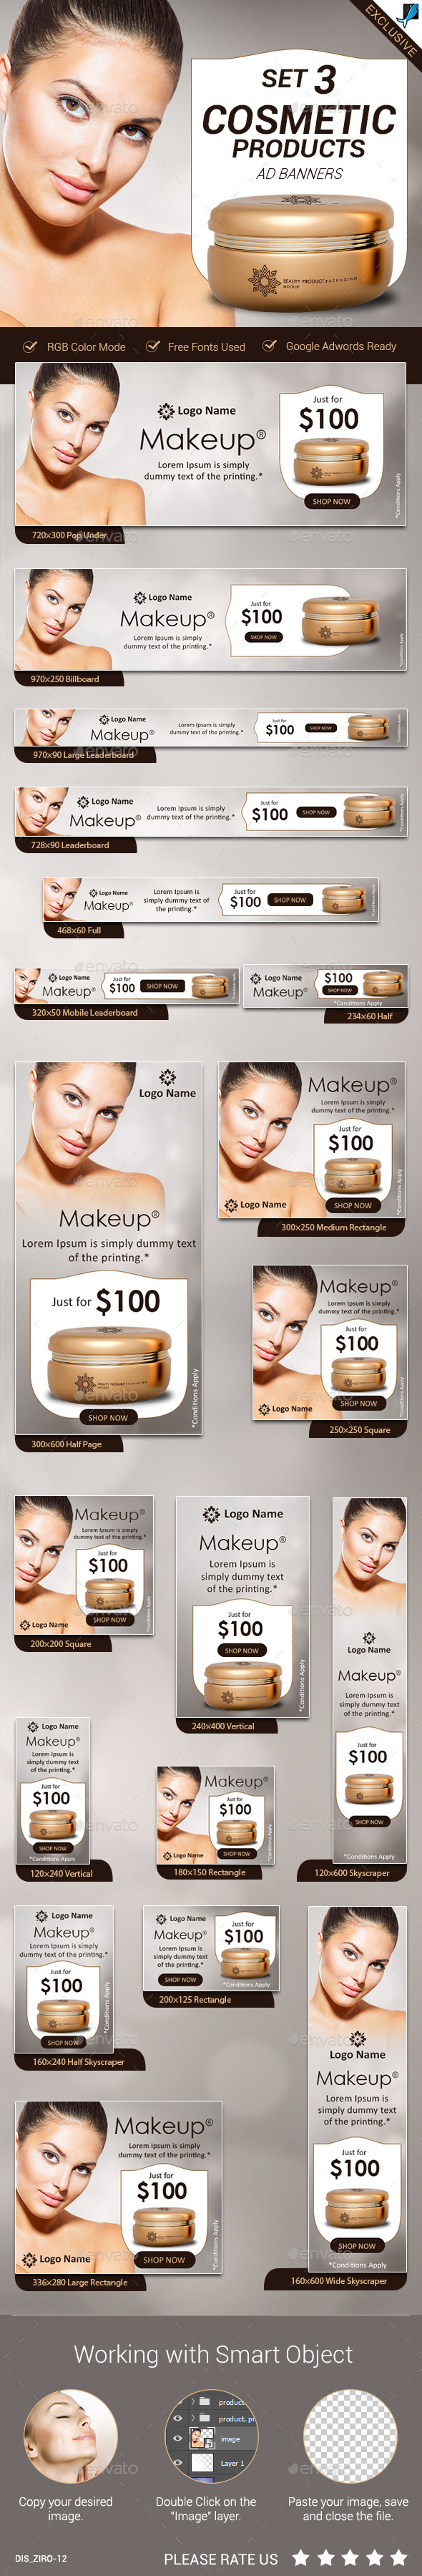 Cosmetic Product Ad Banners Set3 - Banners & Ads Web Elements